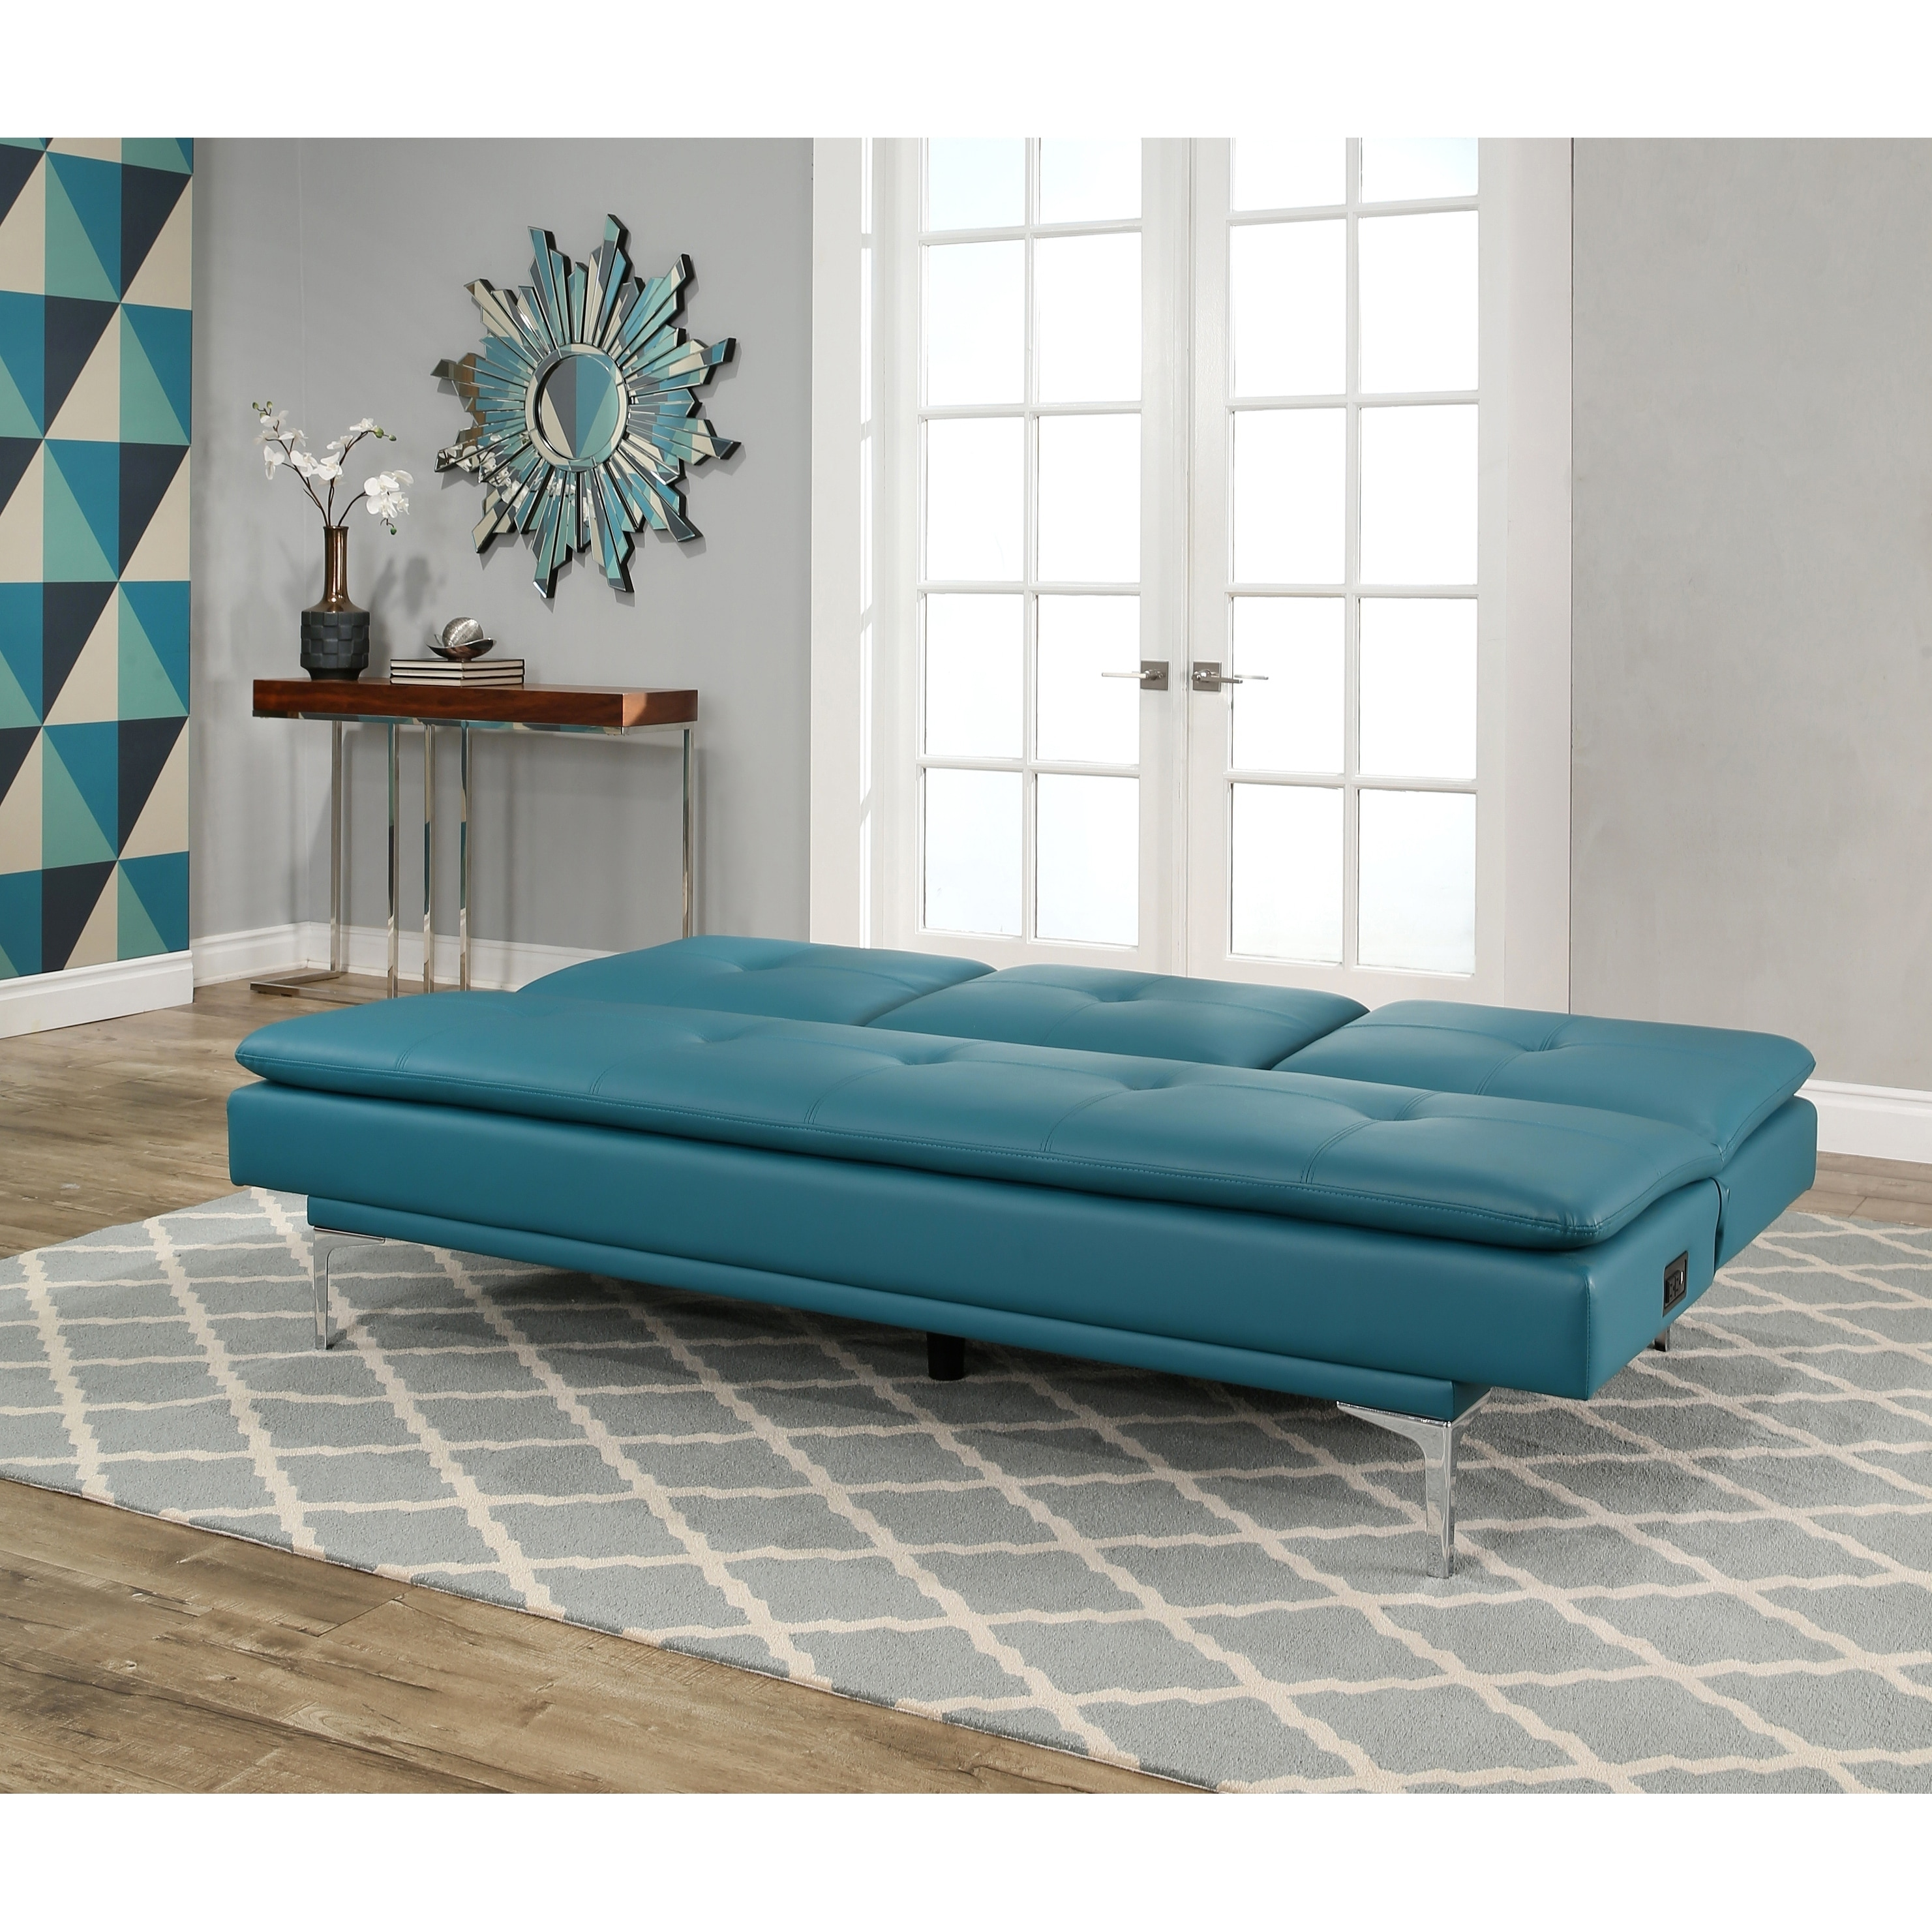 leather chair bed sleeper swivel gaming shop abbyson kilby turquoise bonded sofa with console